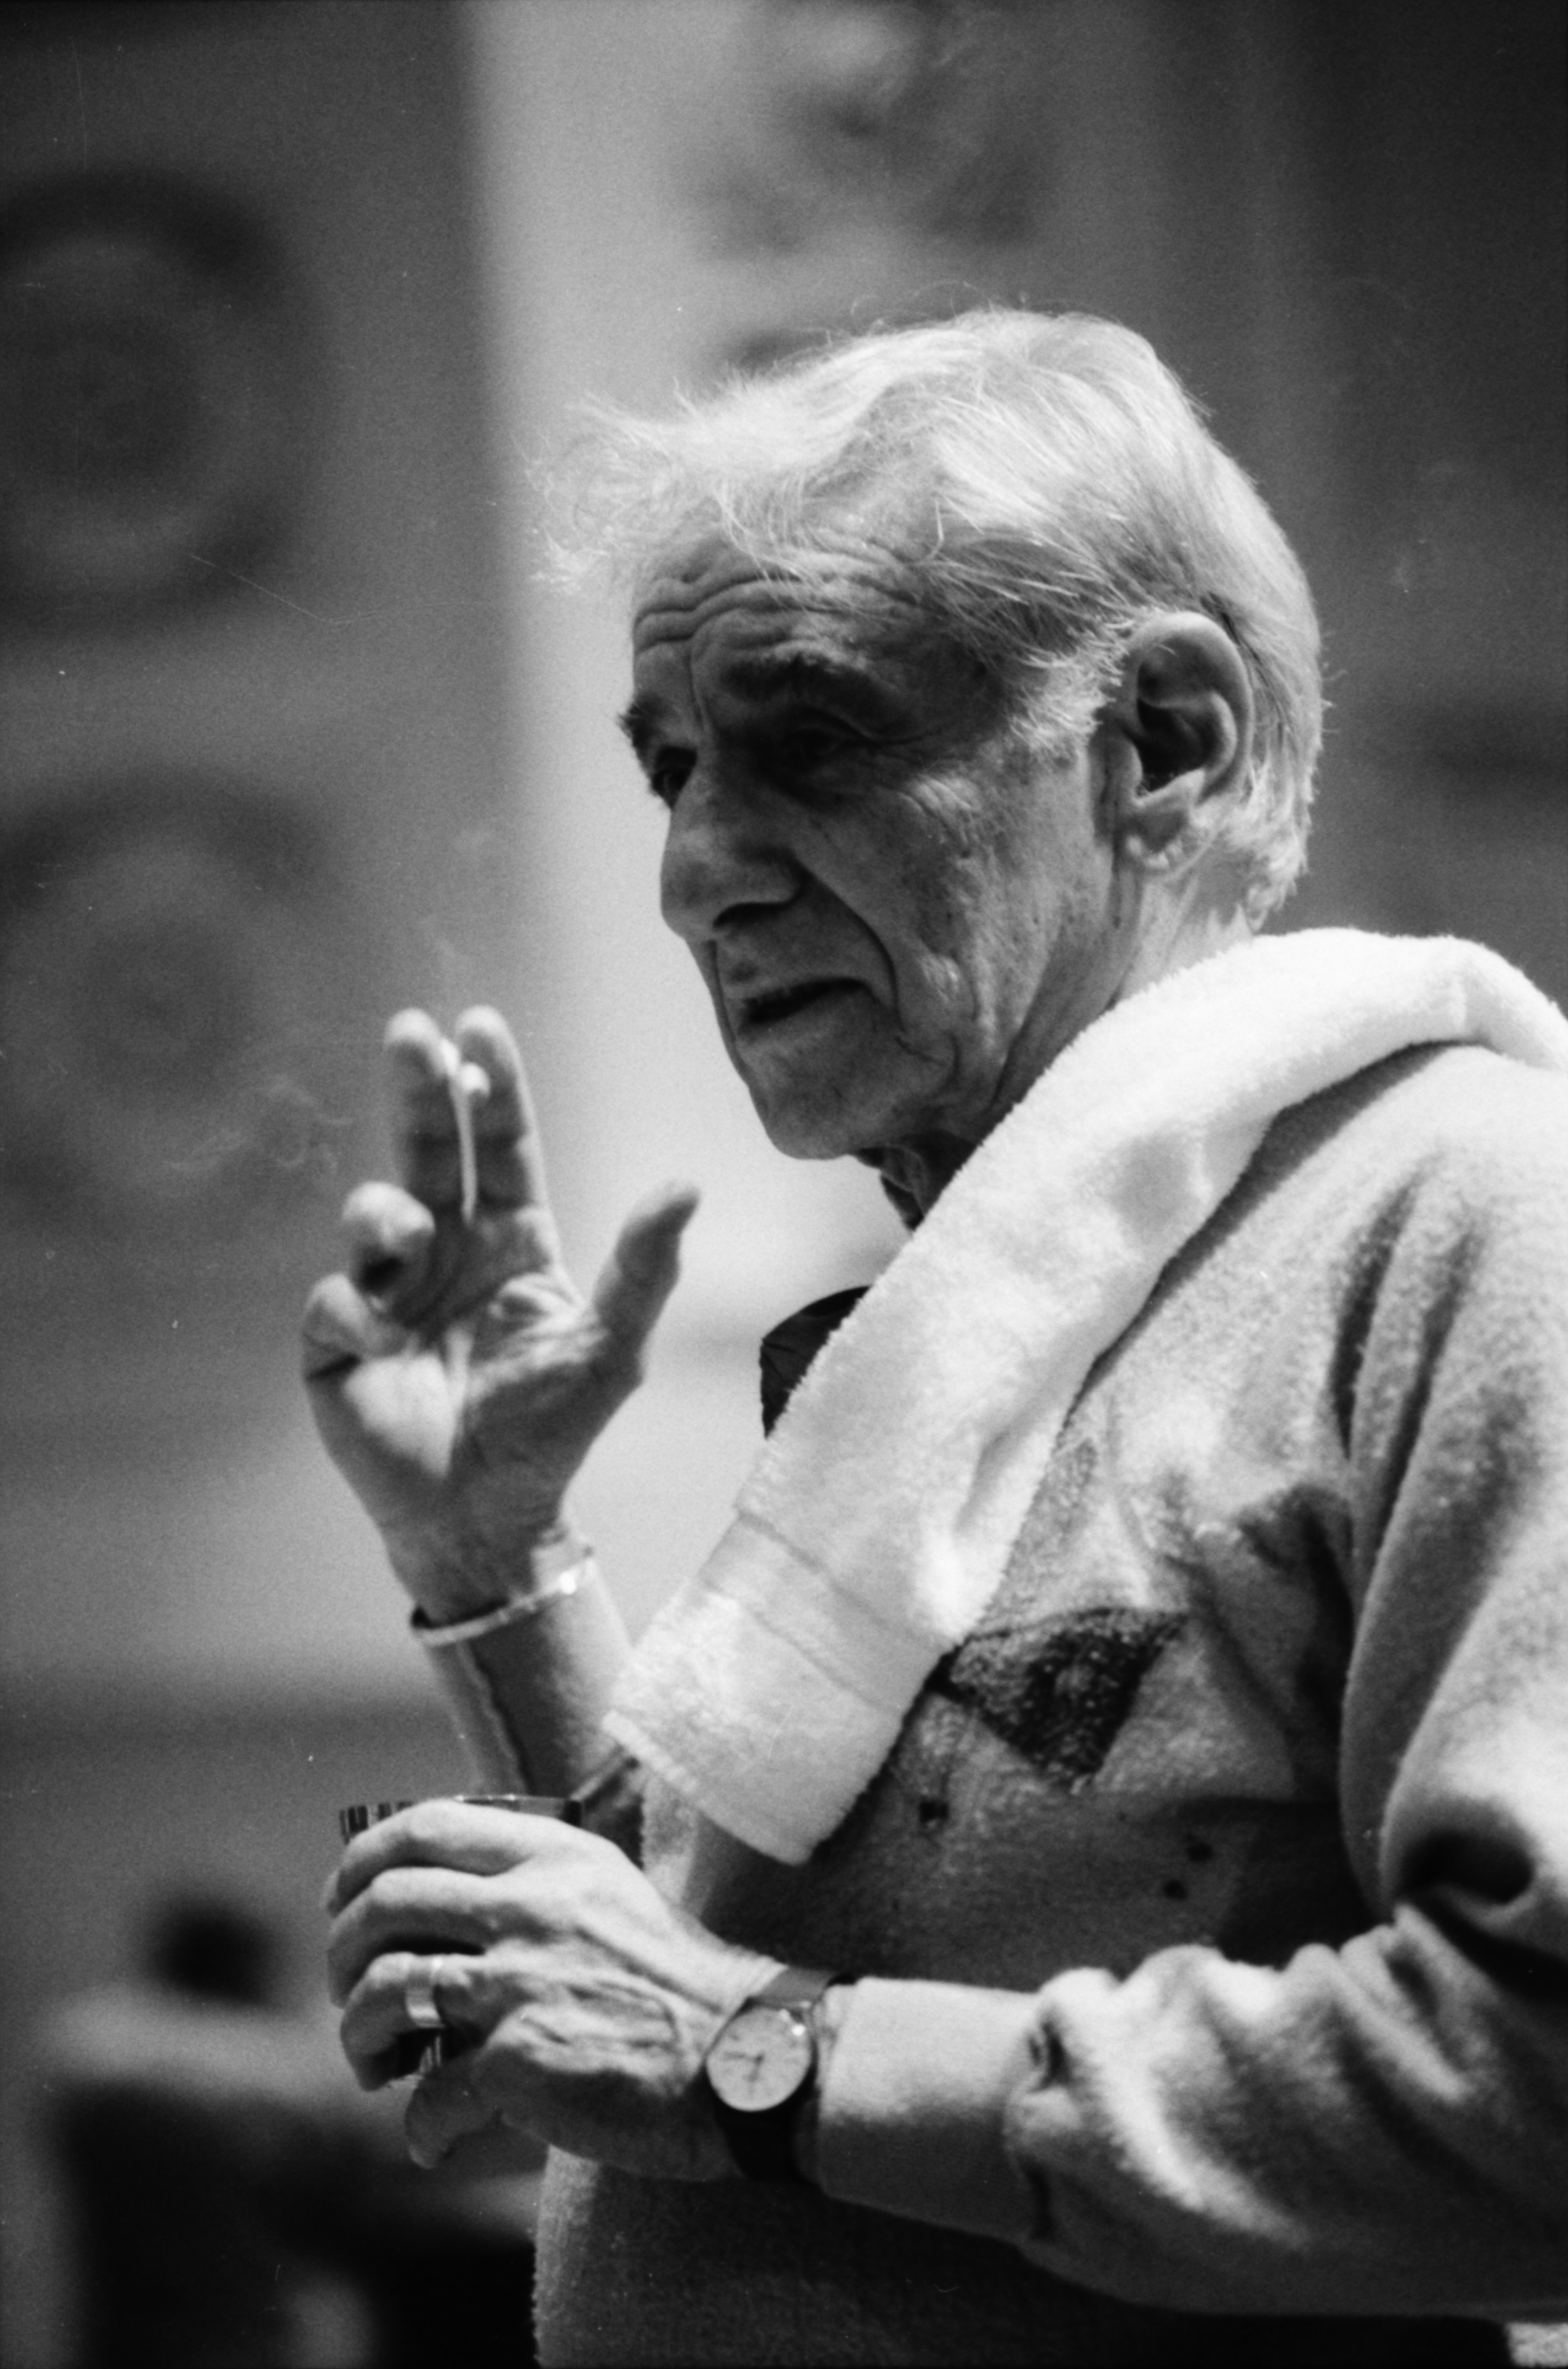 Leonard Bernstein relaxing at Hill Auditorium, February 1984 image